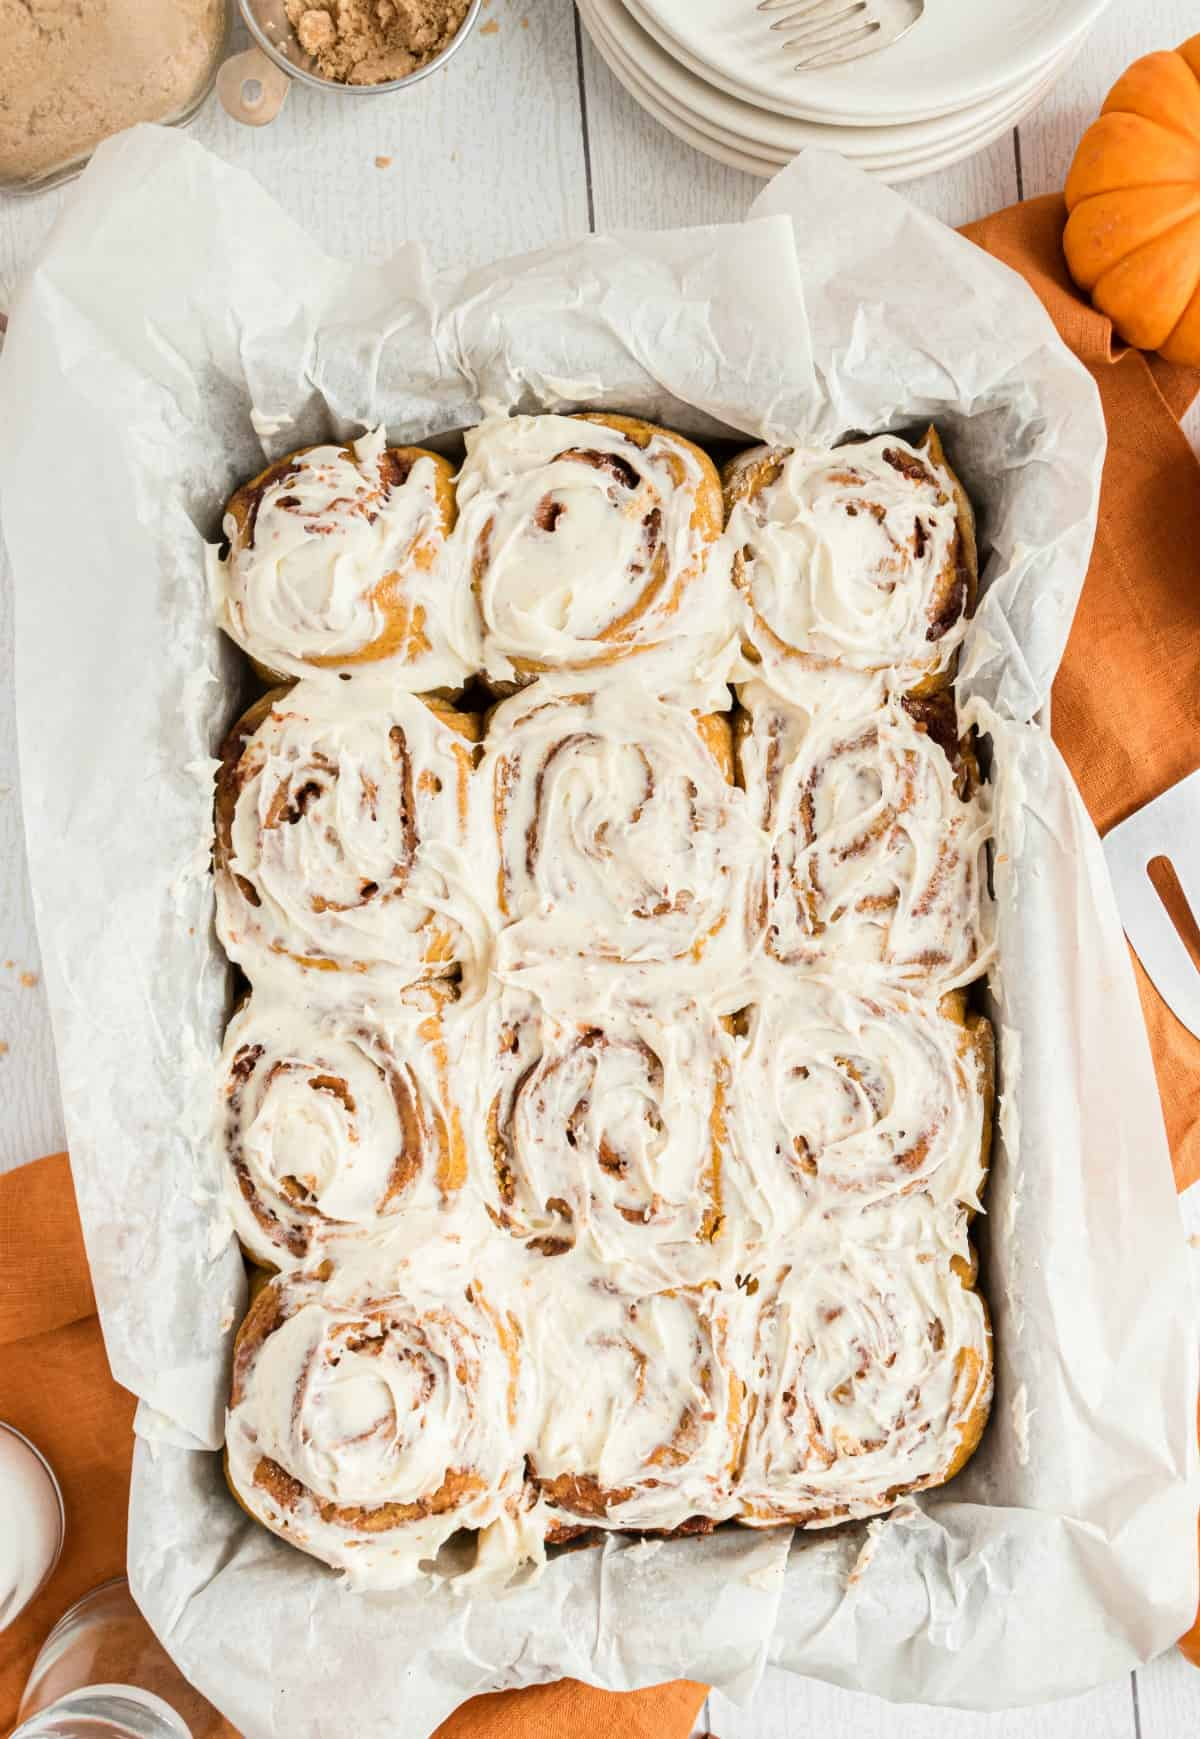 Pumpkin cinnamon rolls with maple icing in a parchment paper lined 13x9 baking dish.